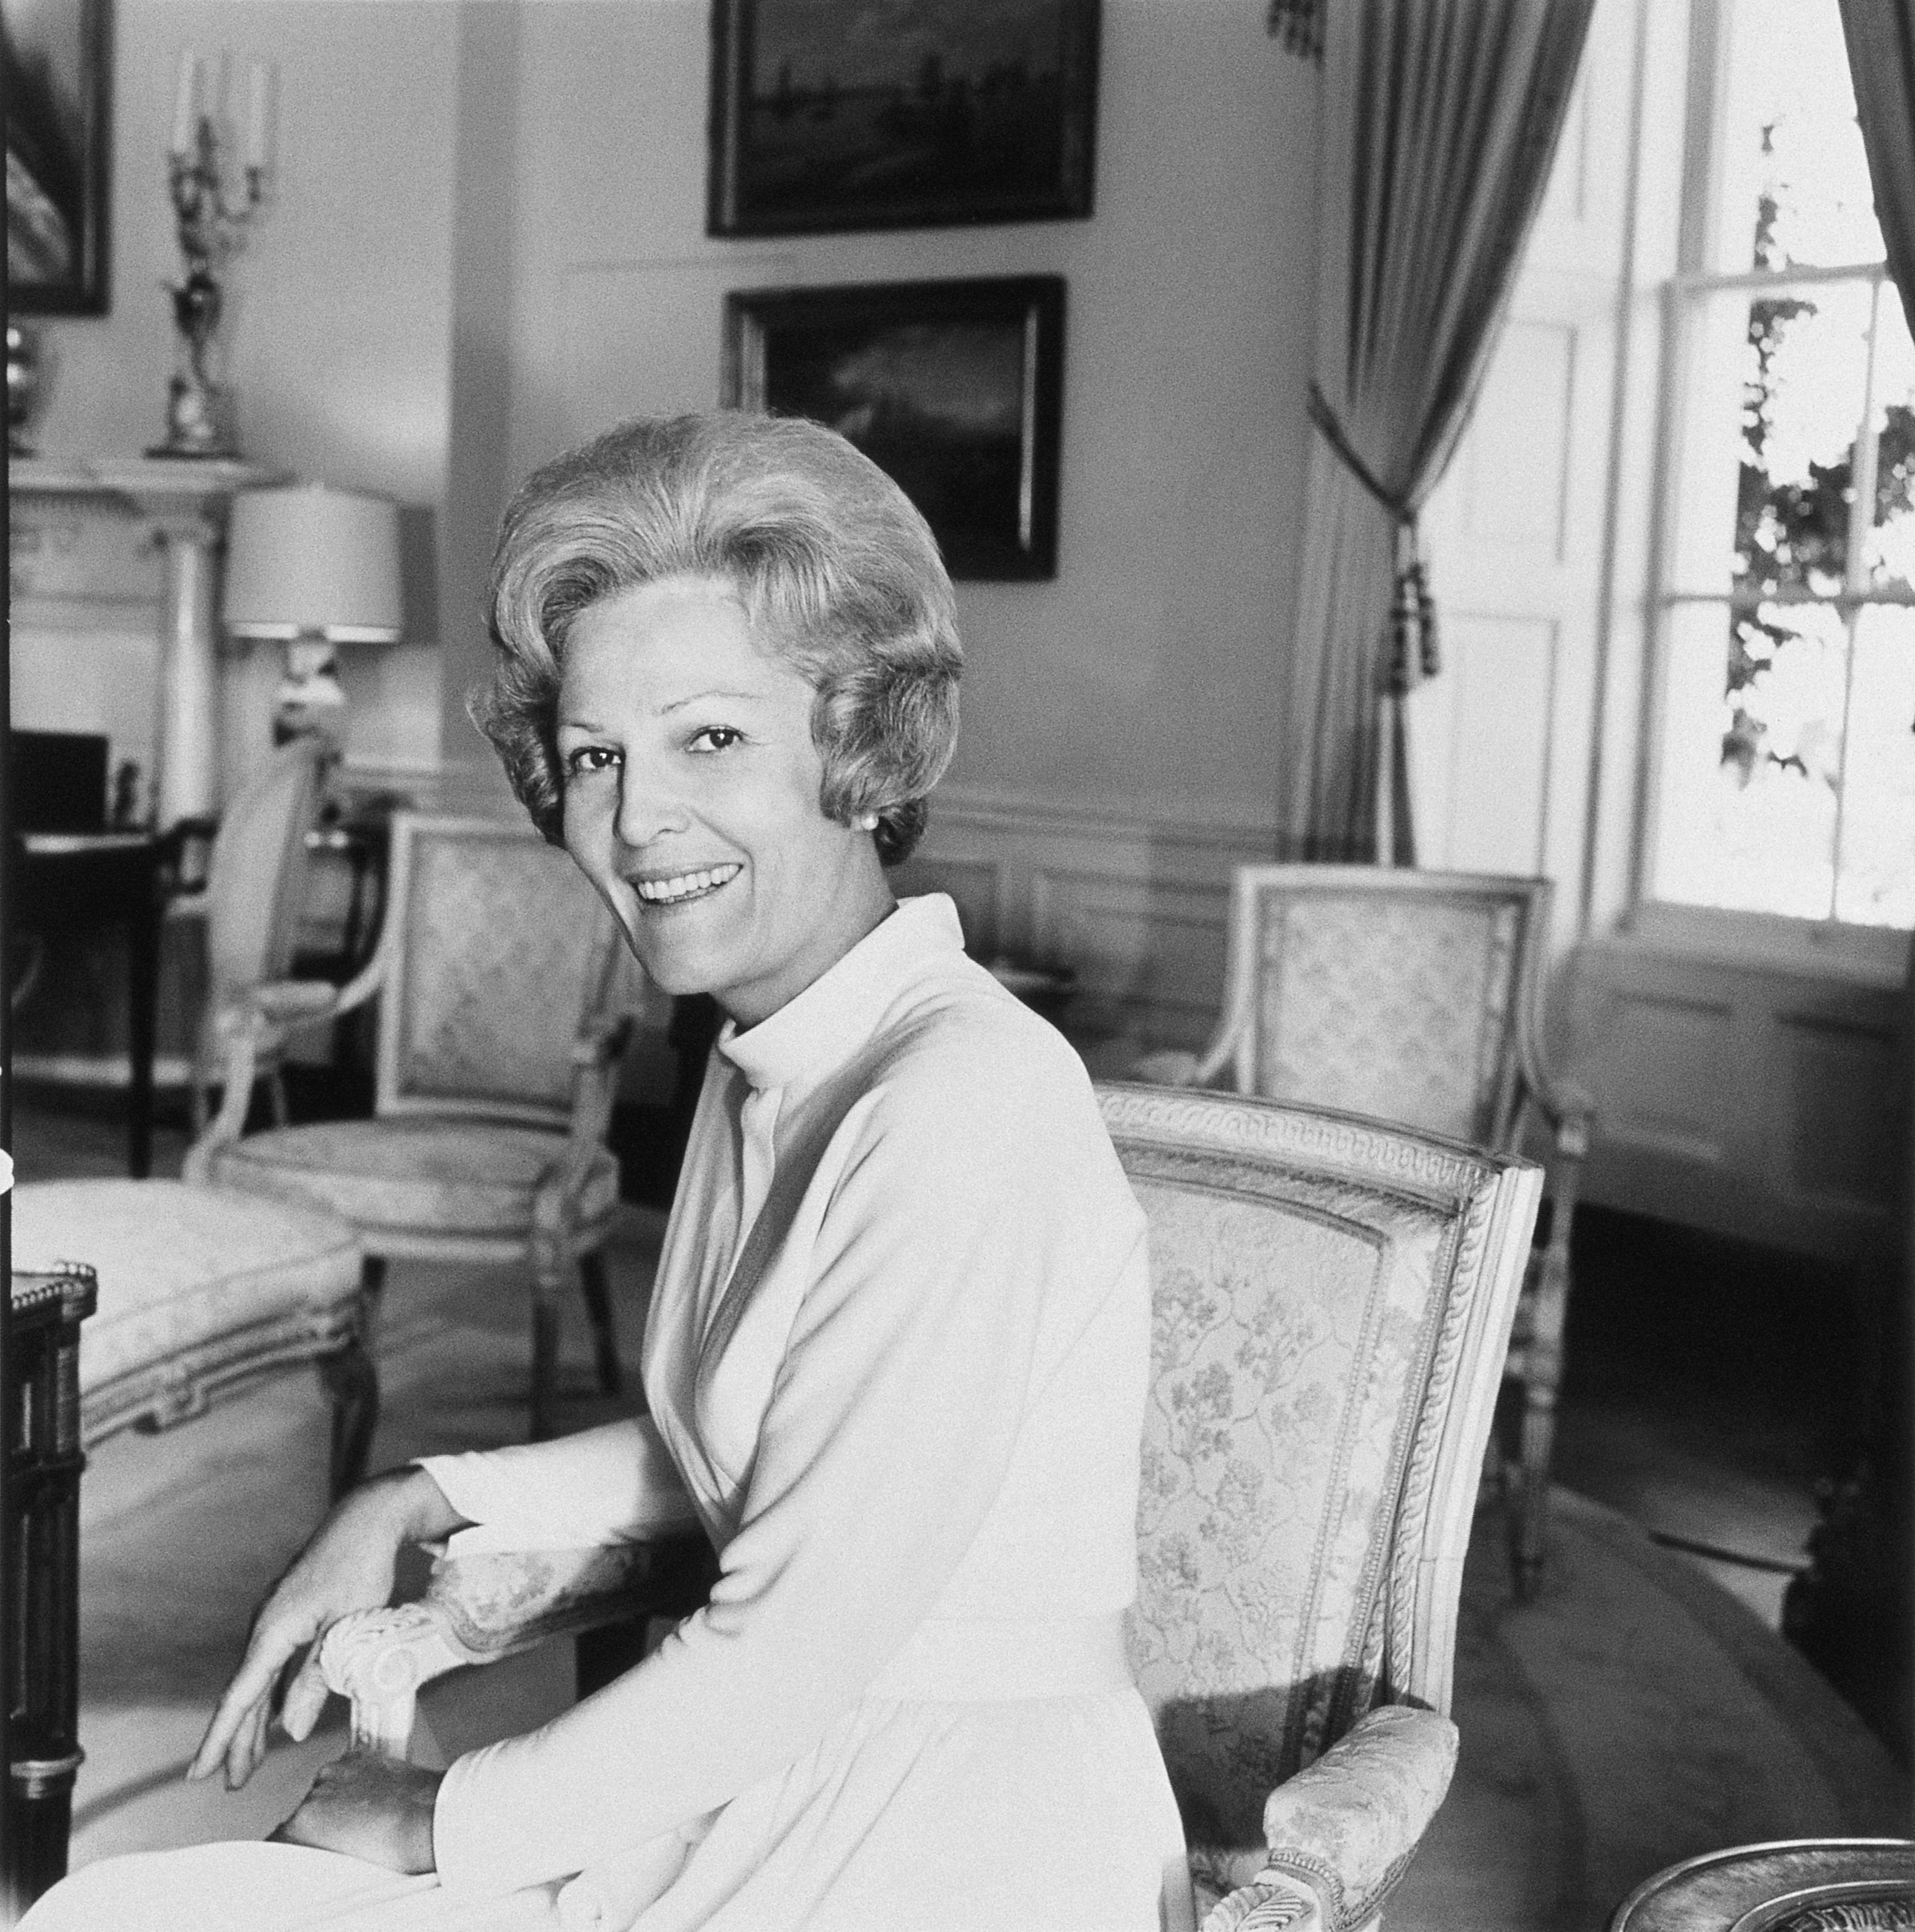 First Lady Pat Nixon), wife of the 37th president of the United States, sitting in the White House in 1972.